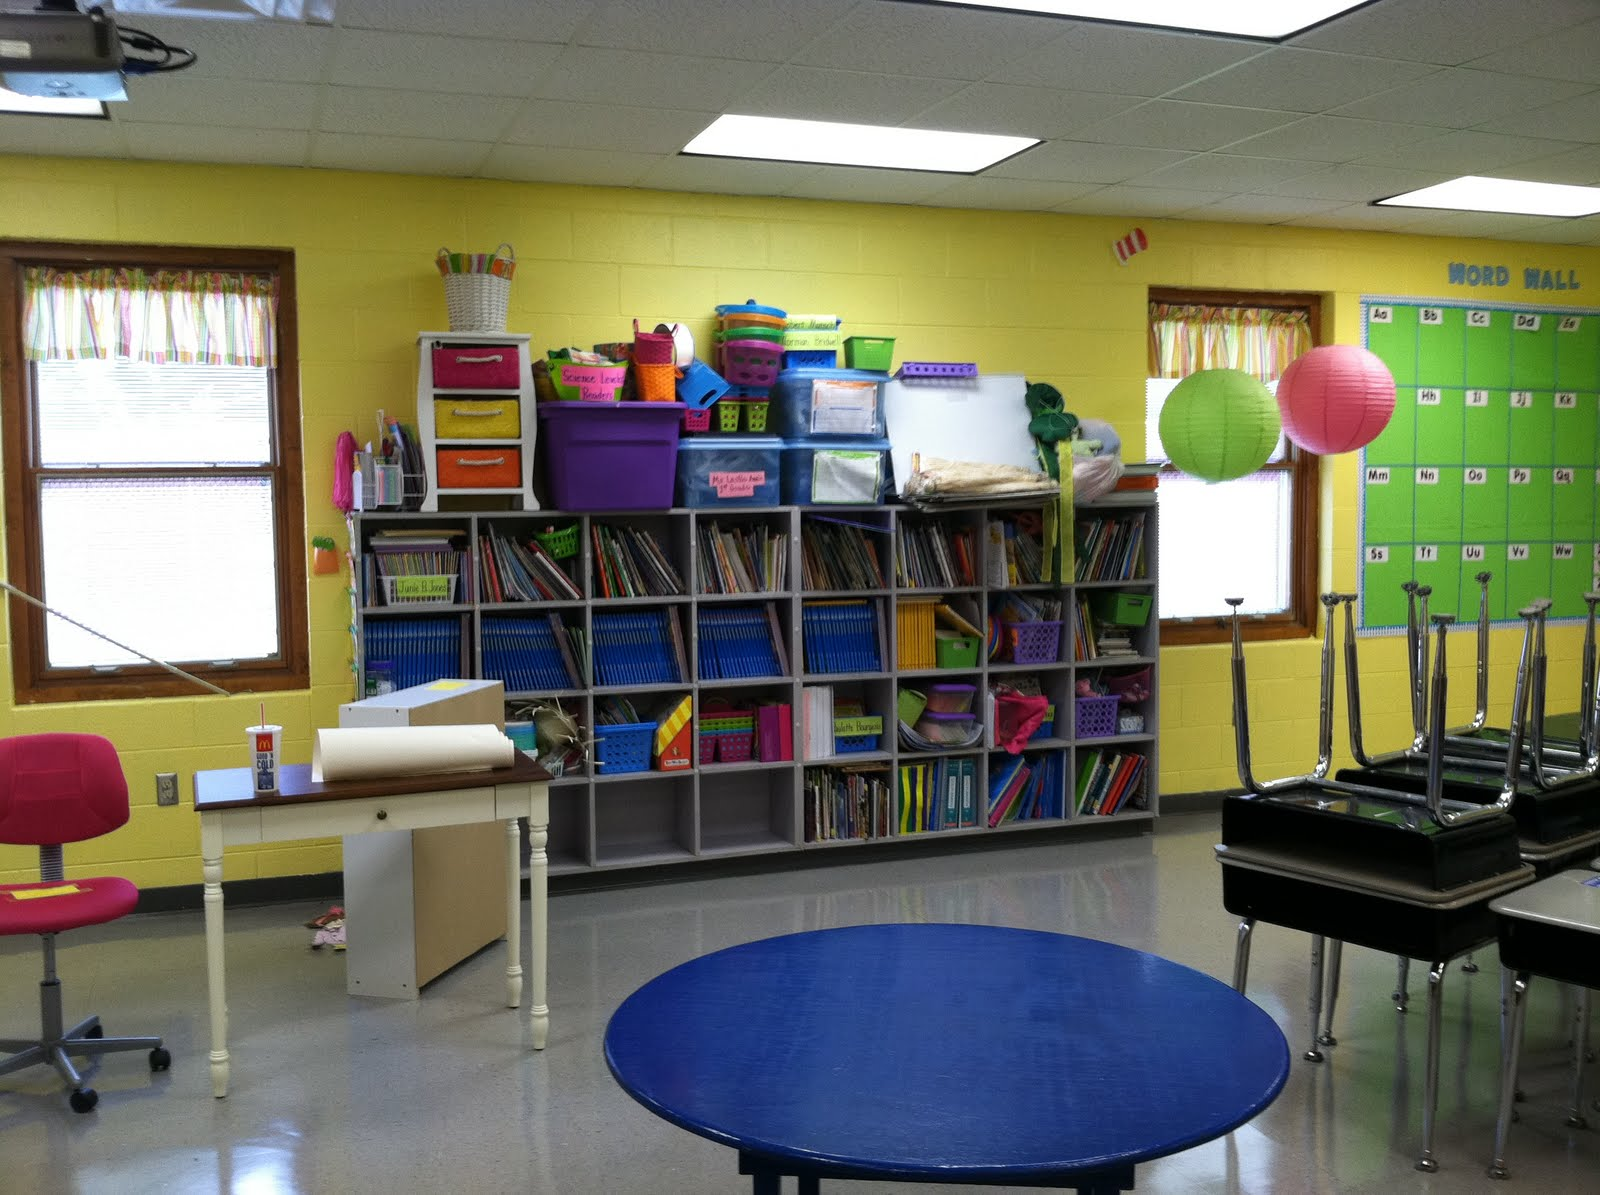 Classroom Decorating Ideas ~ Classroom decorating ideas